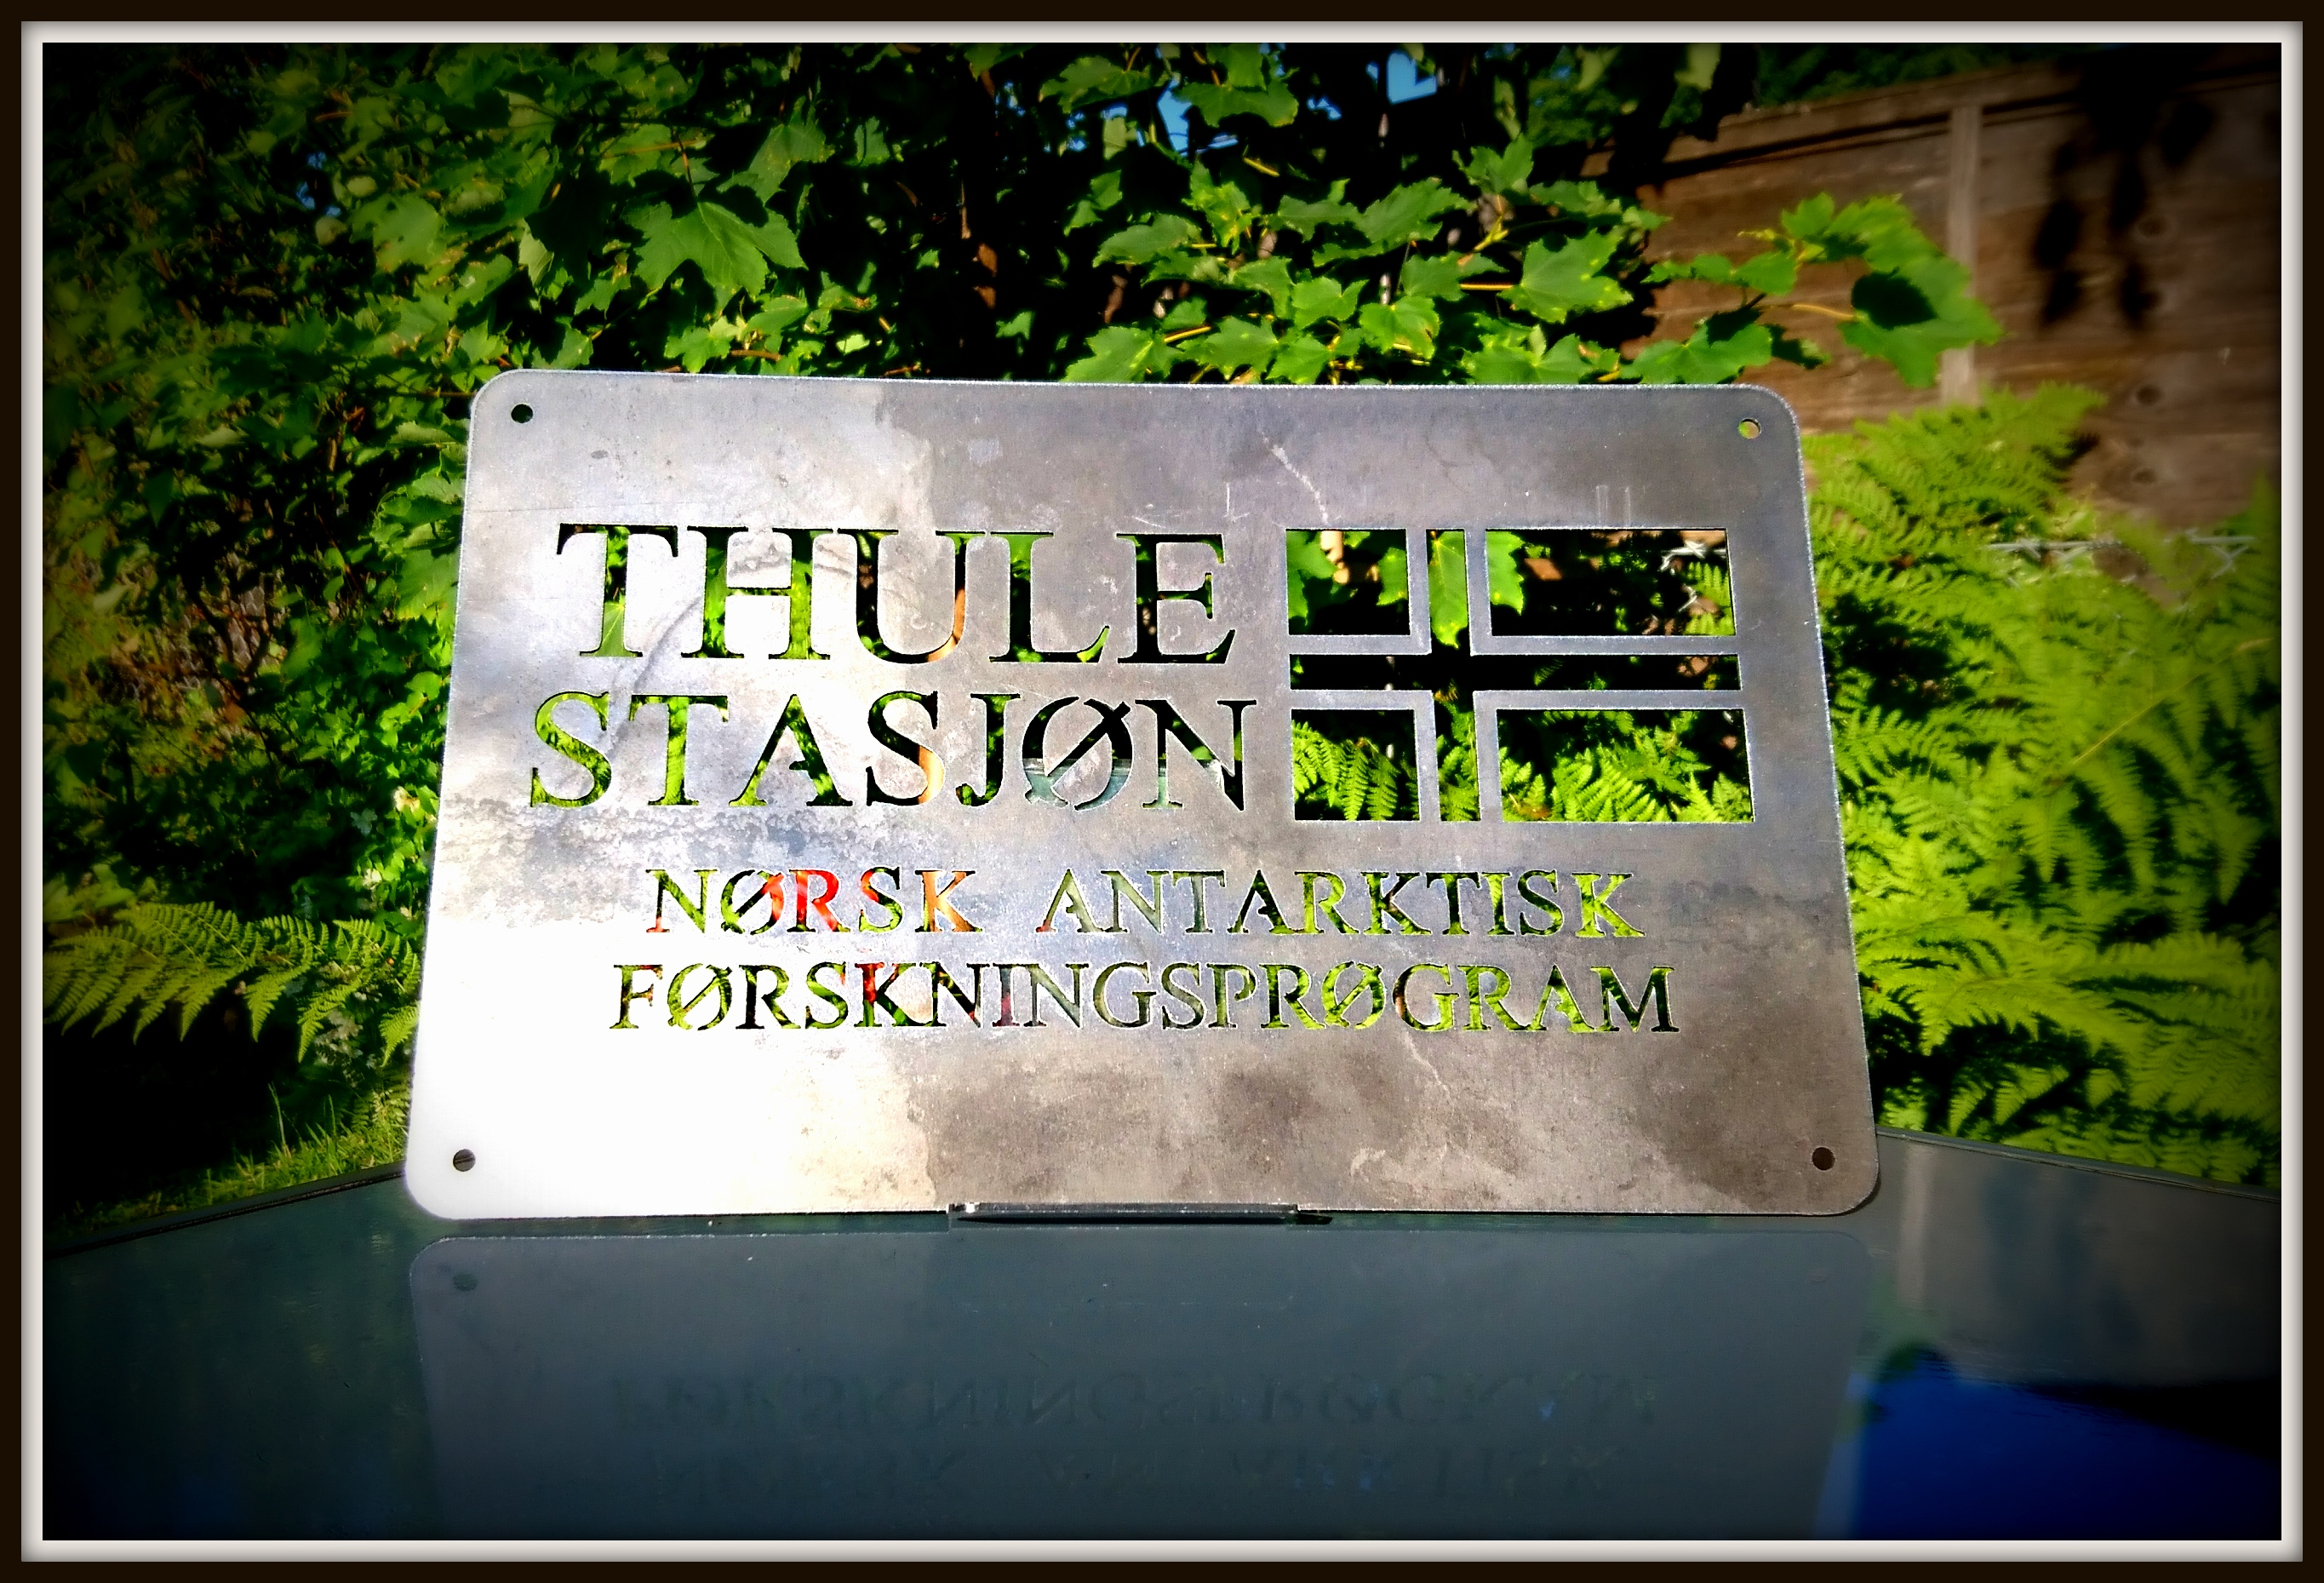 Thule Station. Carbon Steel